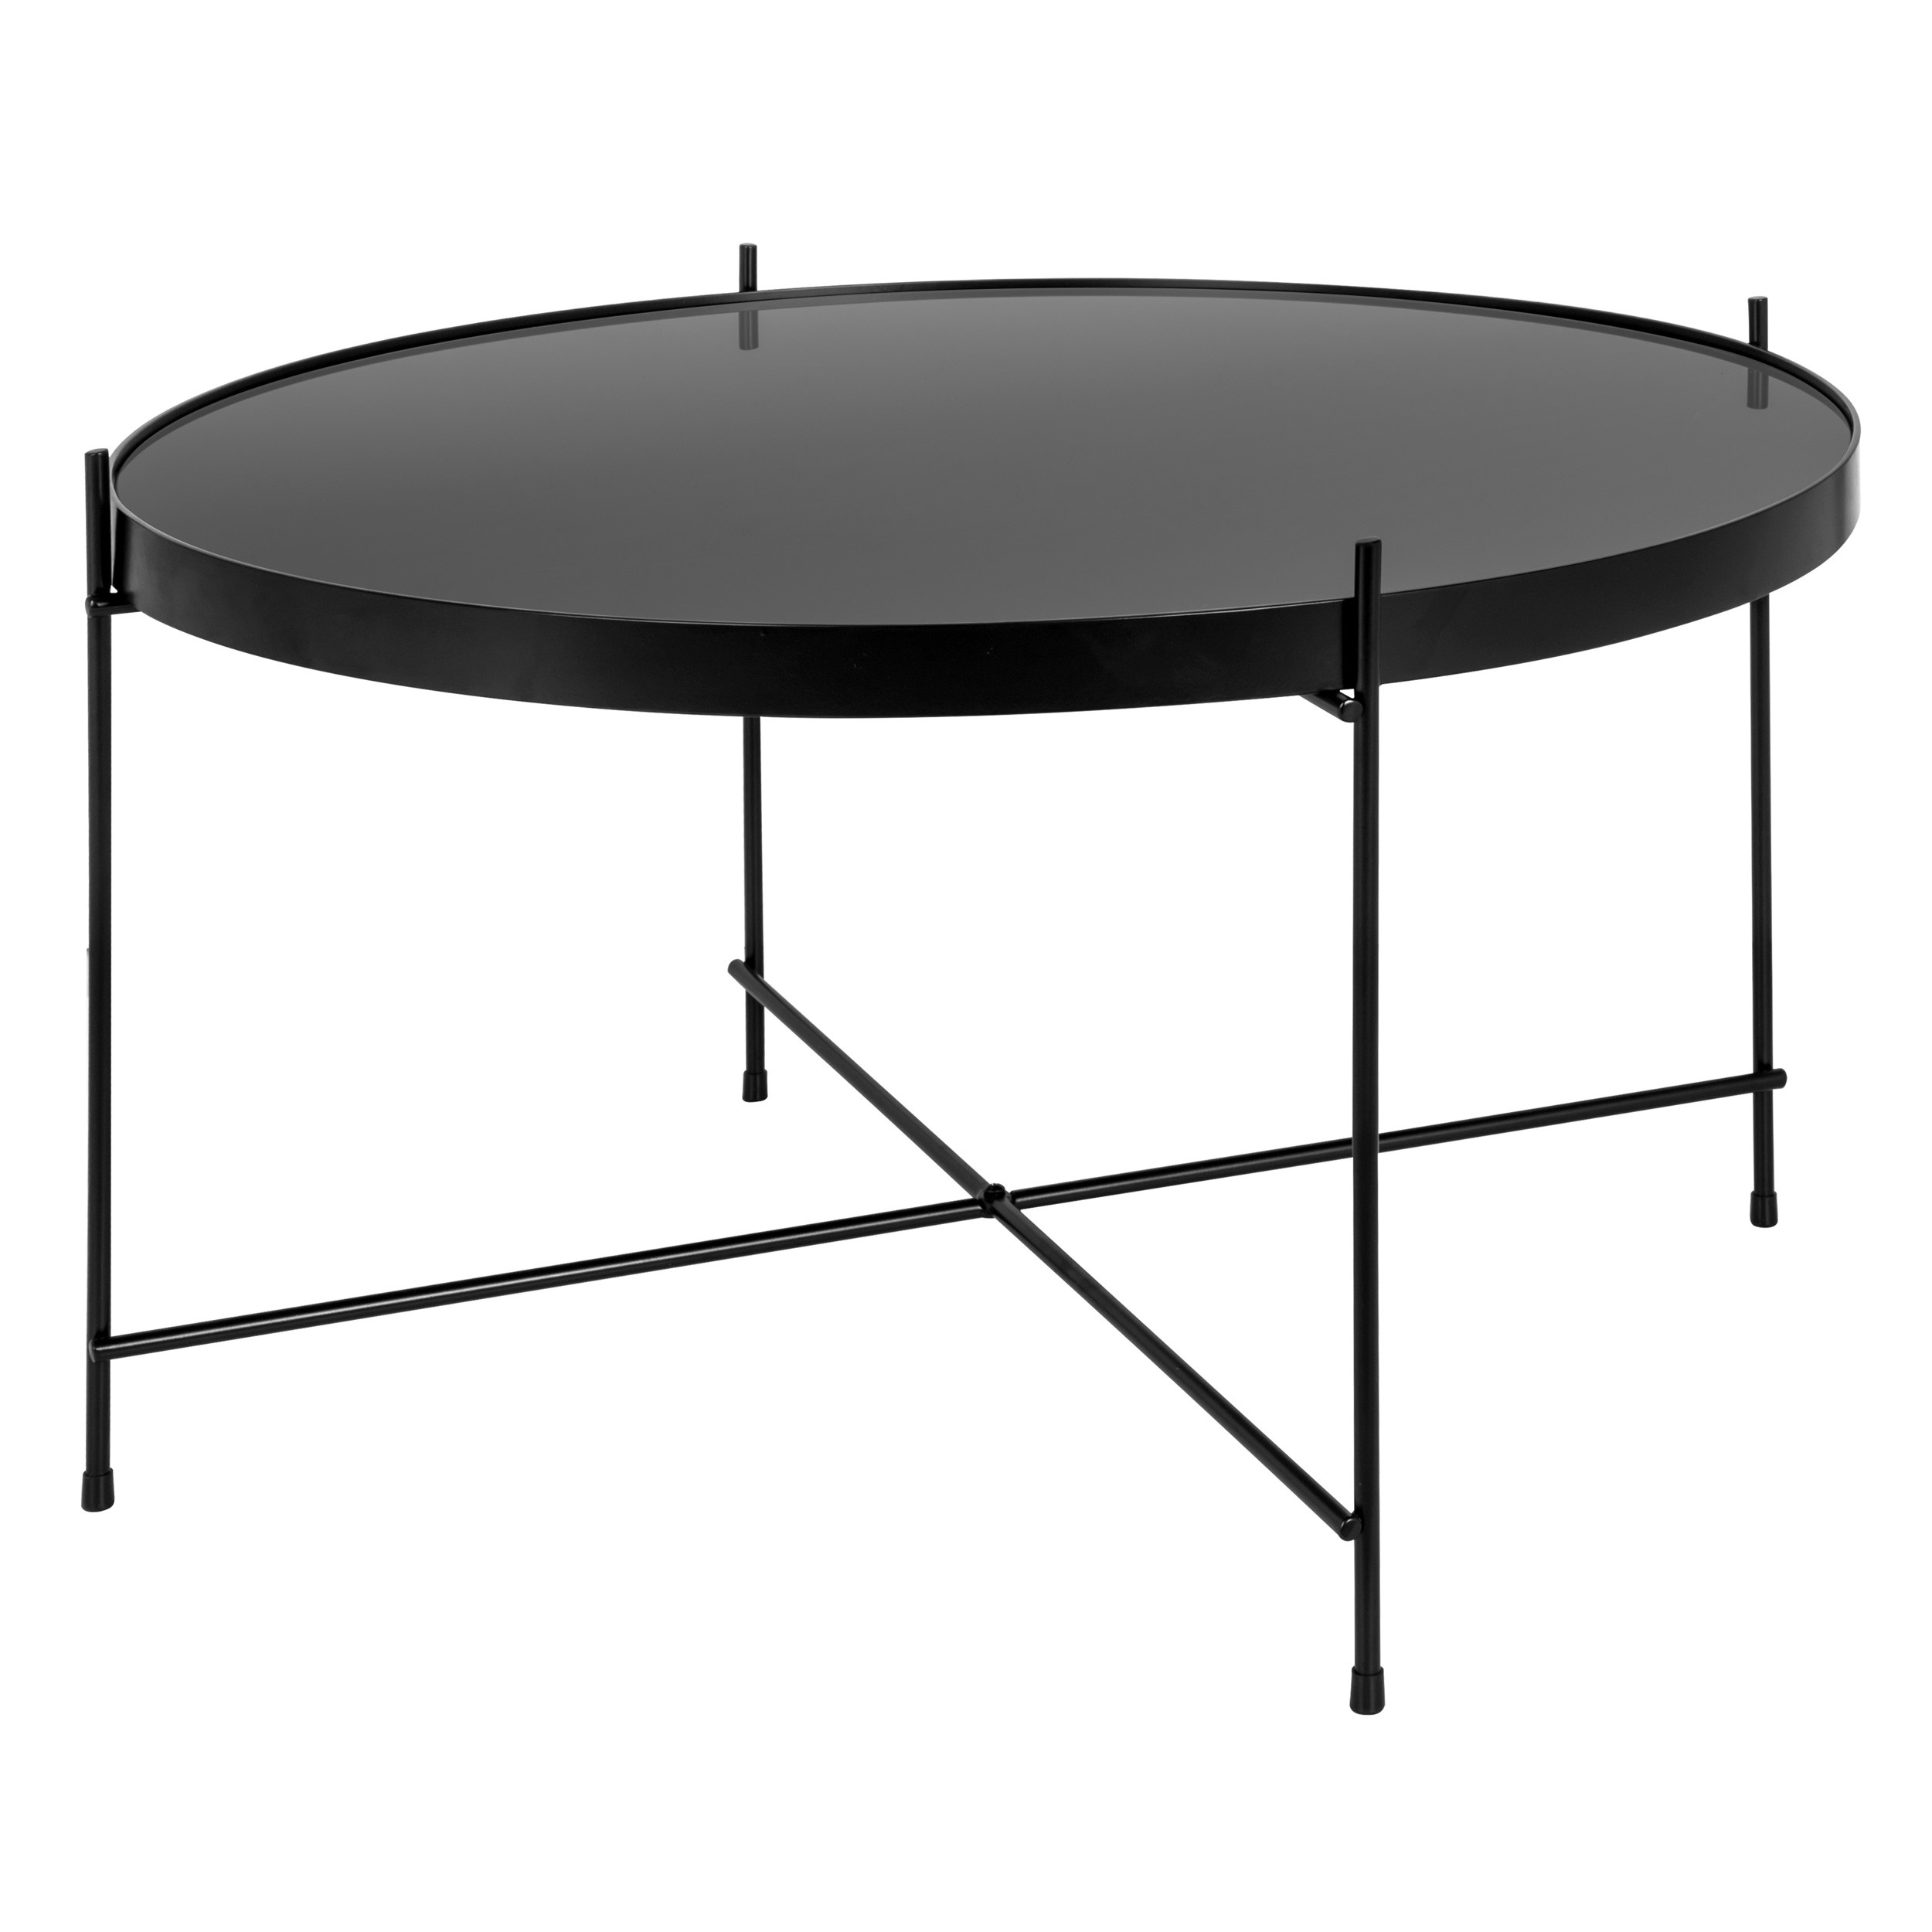 table basse ronde valdo noire m testez nos tables basses rondes valdo noires m rdv d co. Black Bedroom Furniture Sets. Home Design Ideas